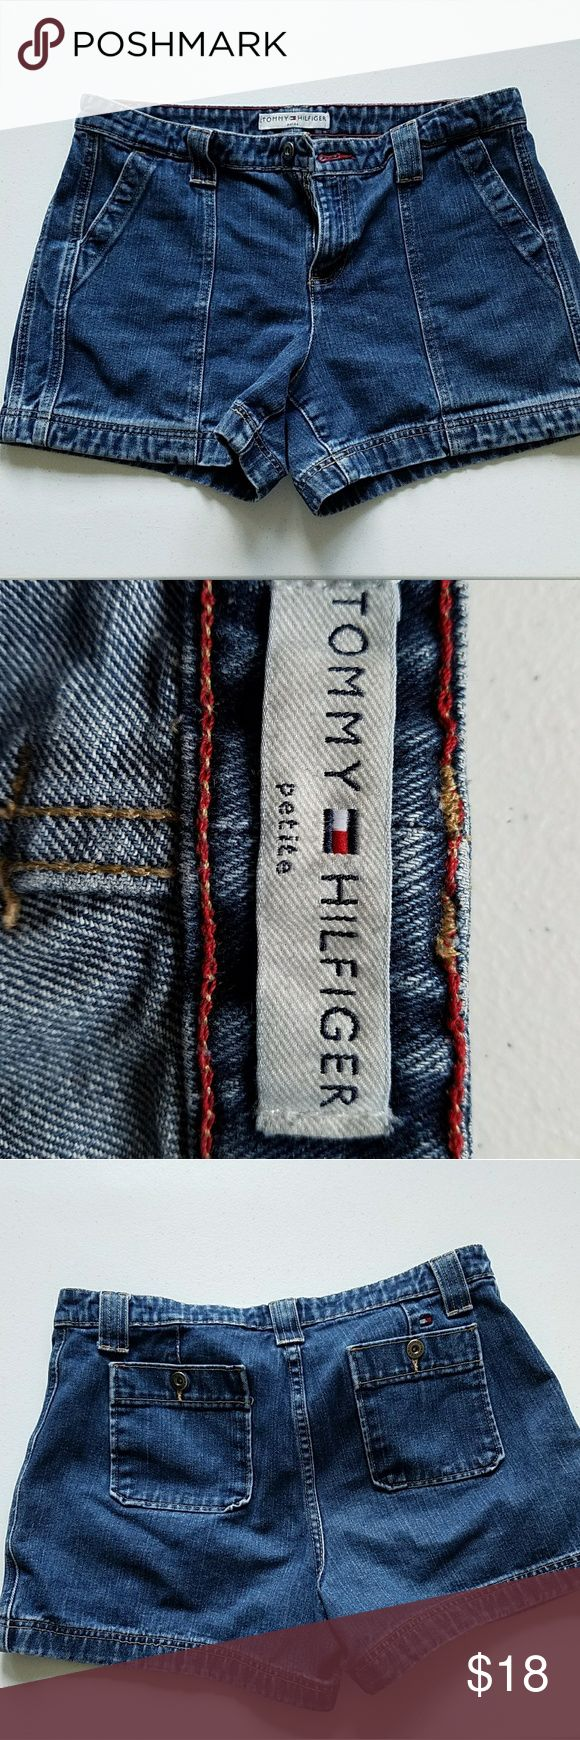 """Tommy Hilfiger denim shorts (12p) Please note: item is a woman's petite   13"""" long in front  13 1/2"""" long in the back   Waistband is 17"""" across Tommy Hilfiger Shorts Jean Shorts"""